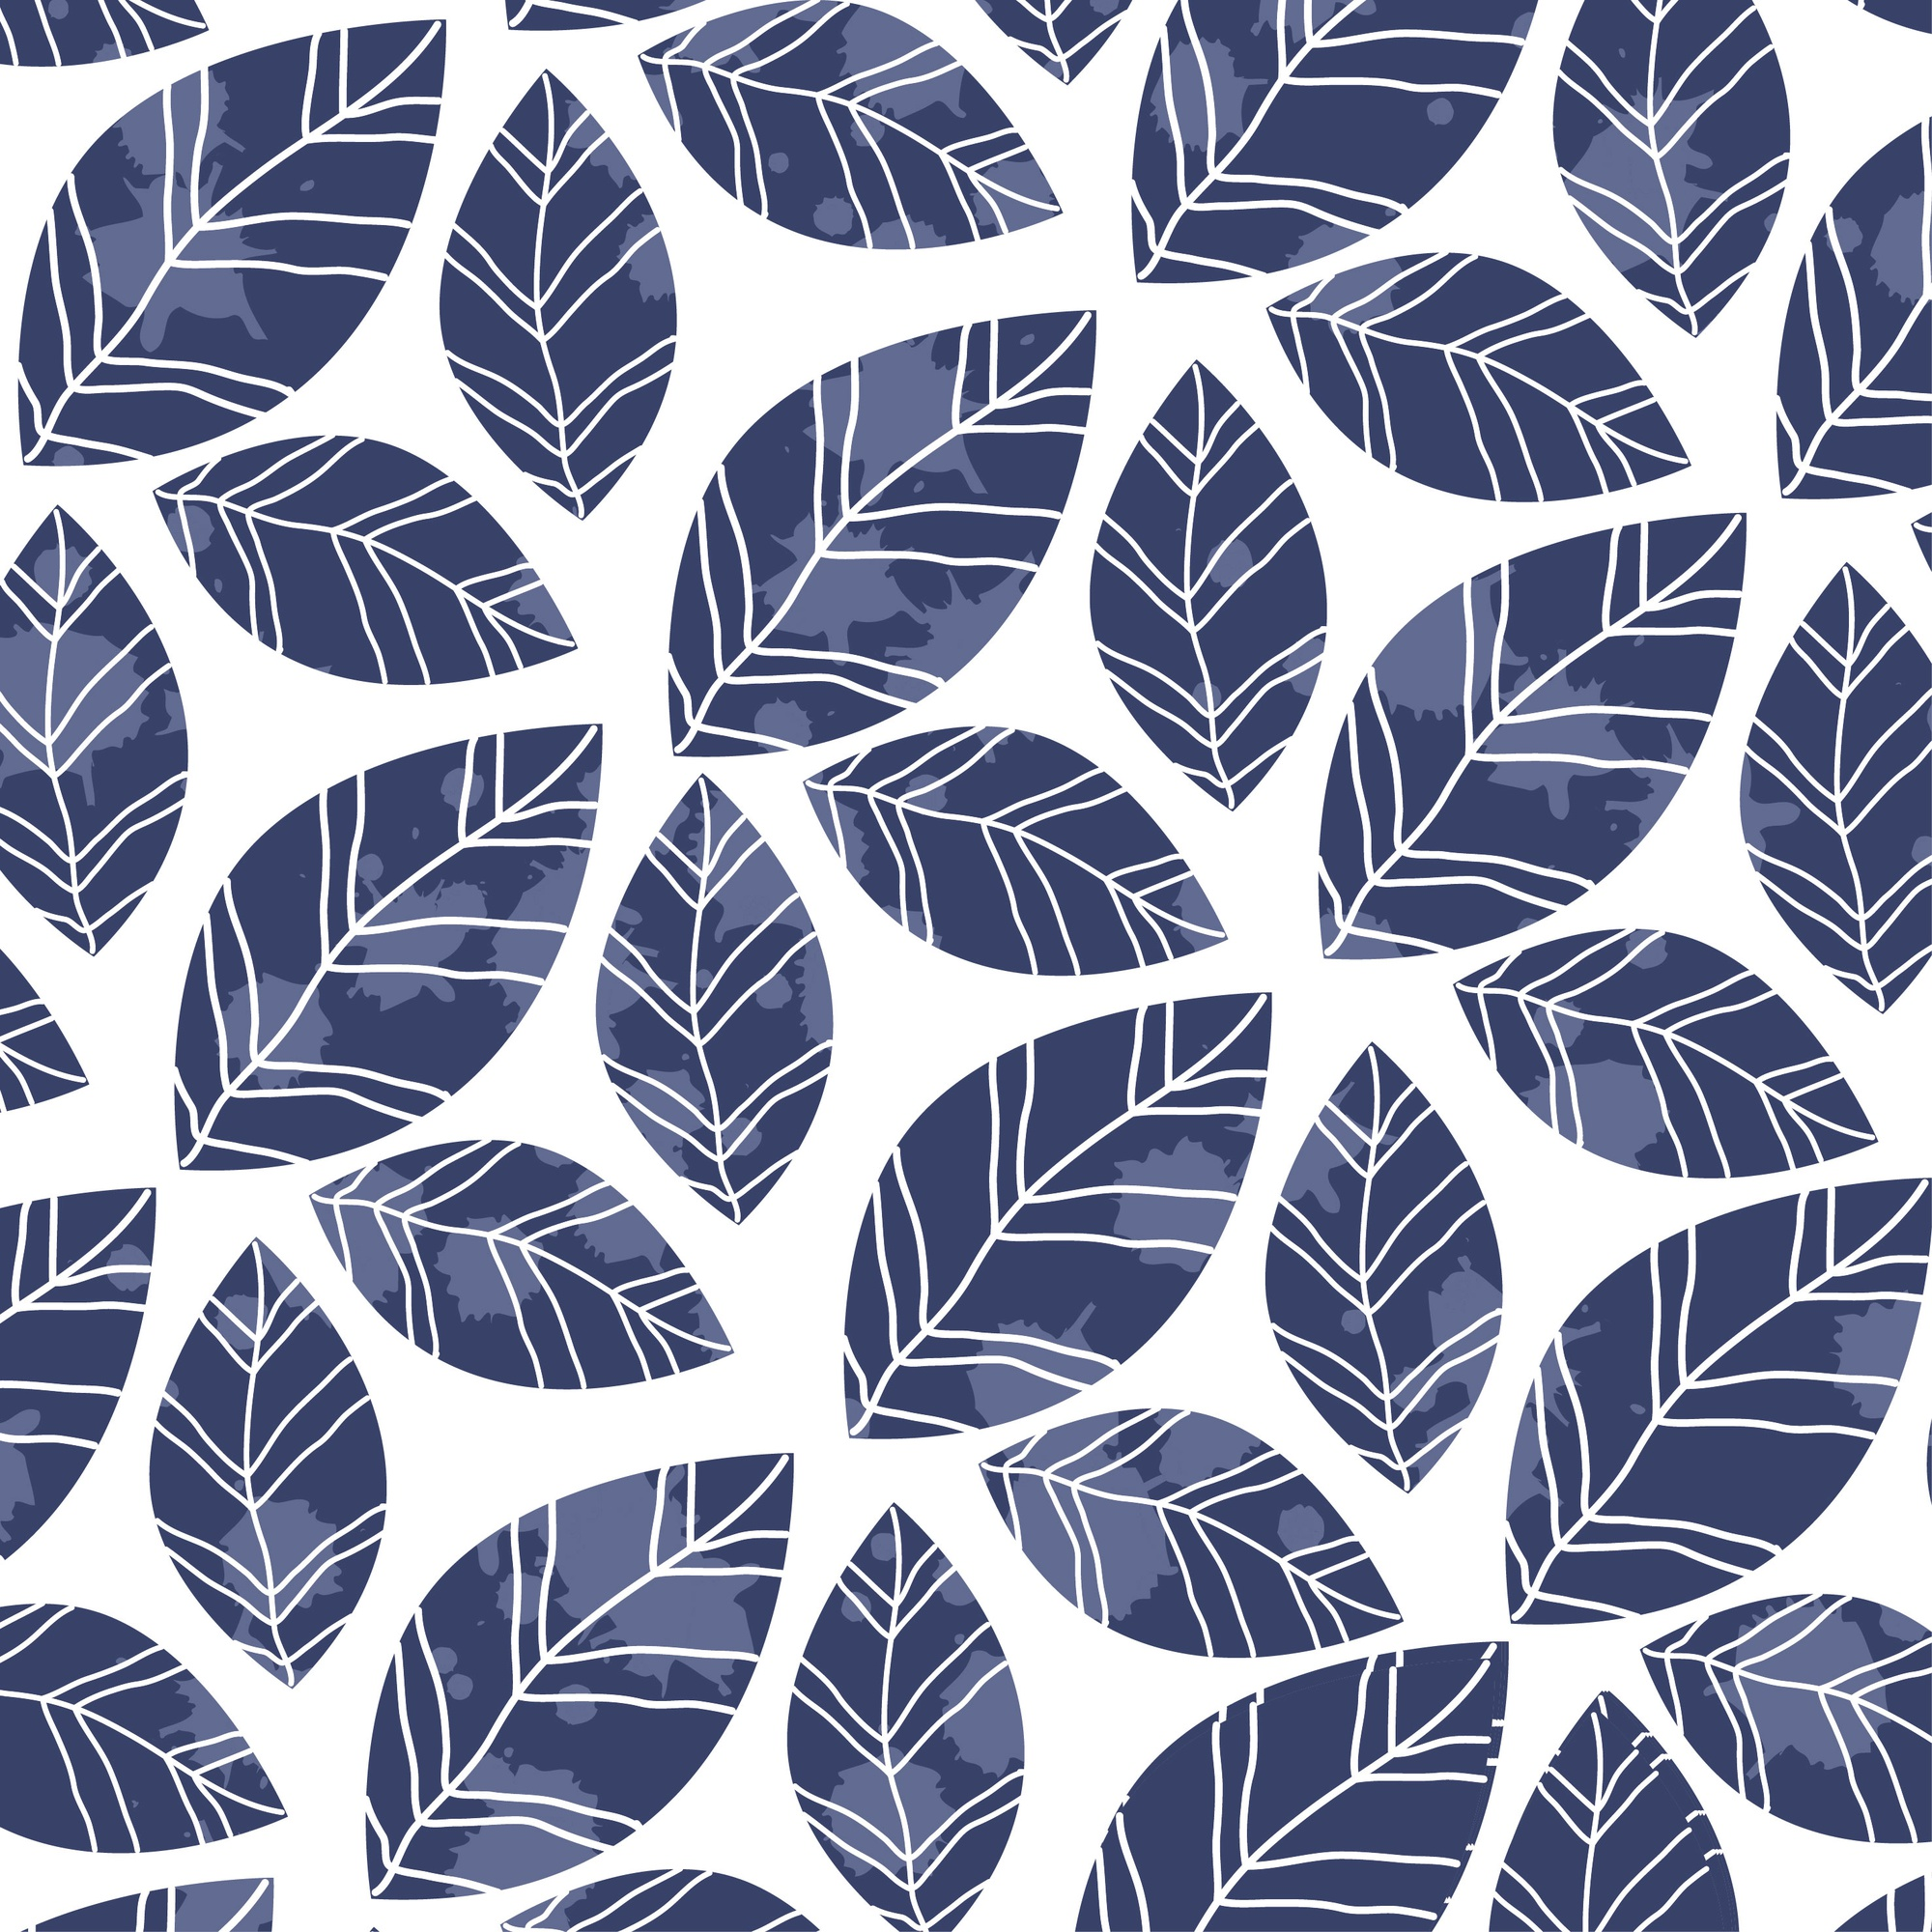 Leaves grunge pattern